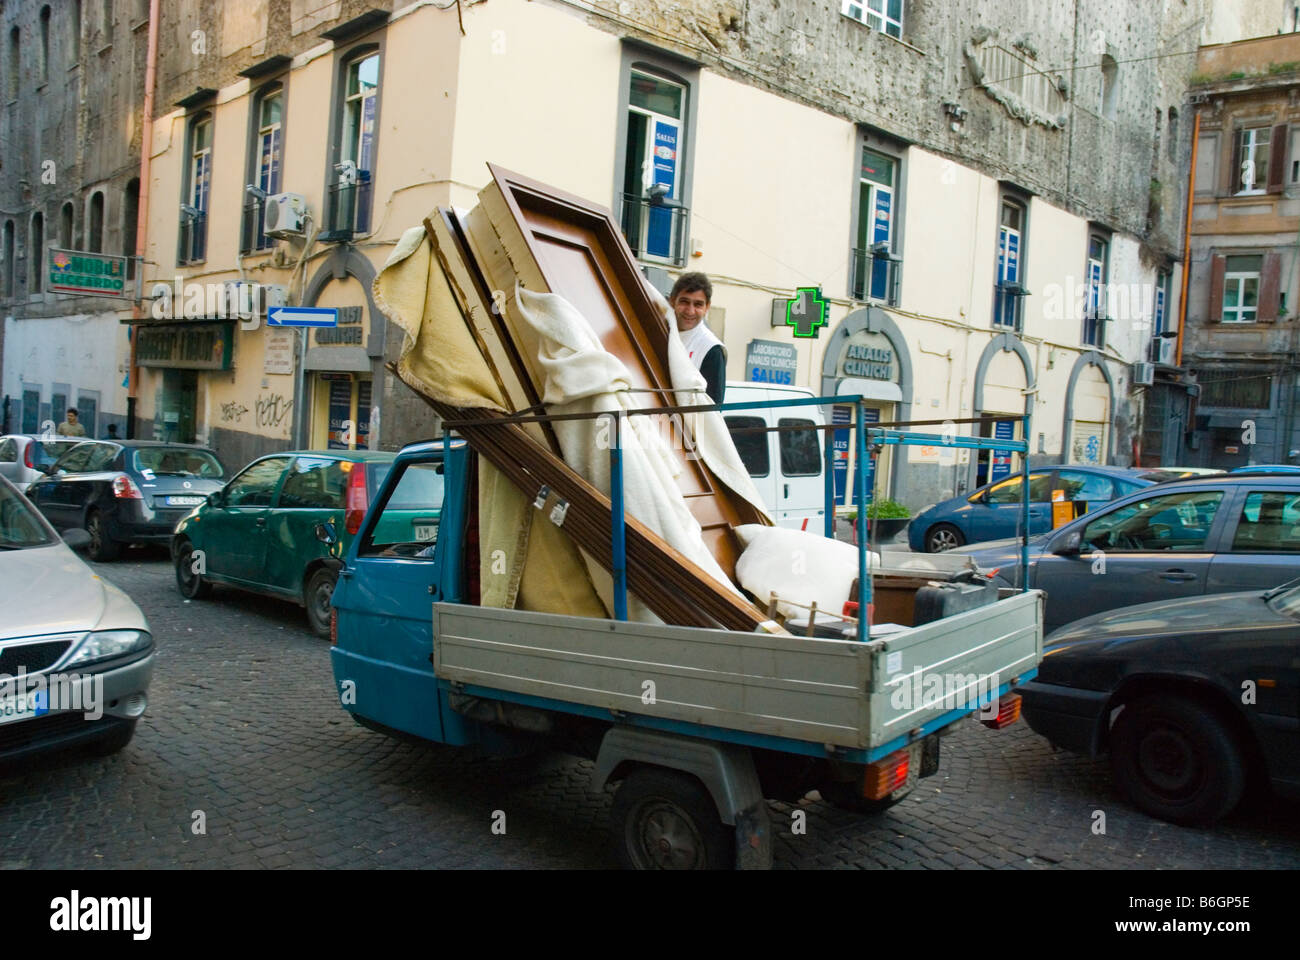 Furniture delivery van in centro storico quarter of naples italy europe stock image